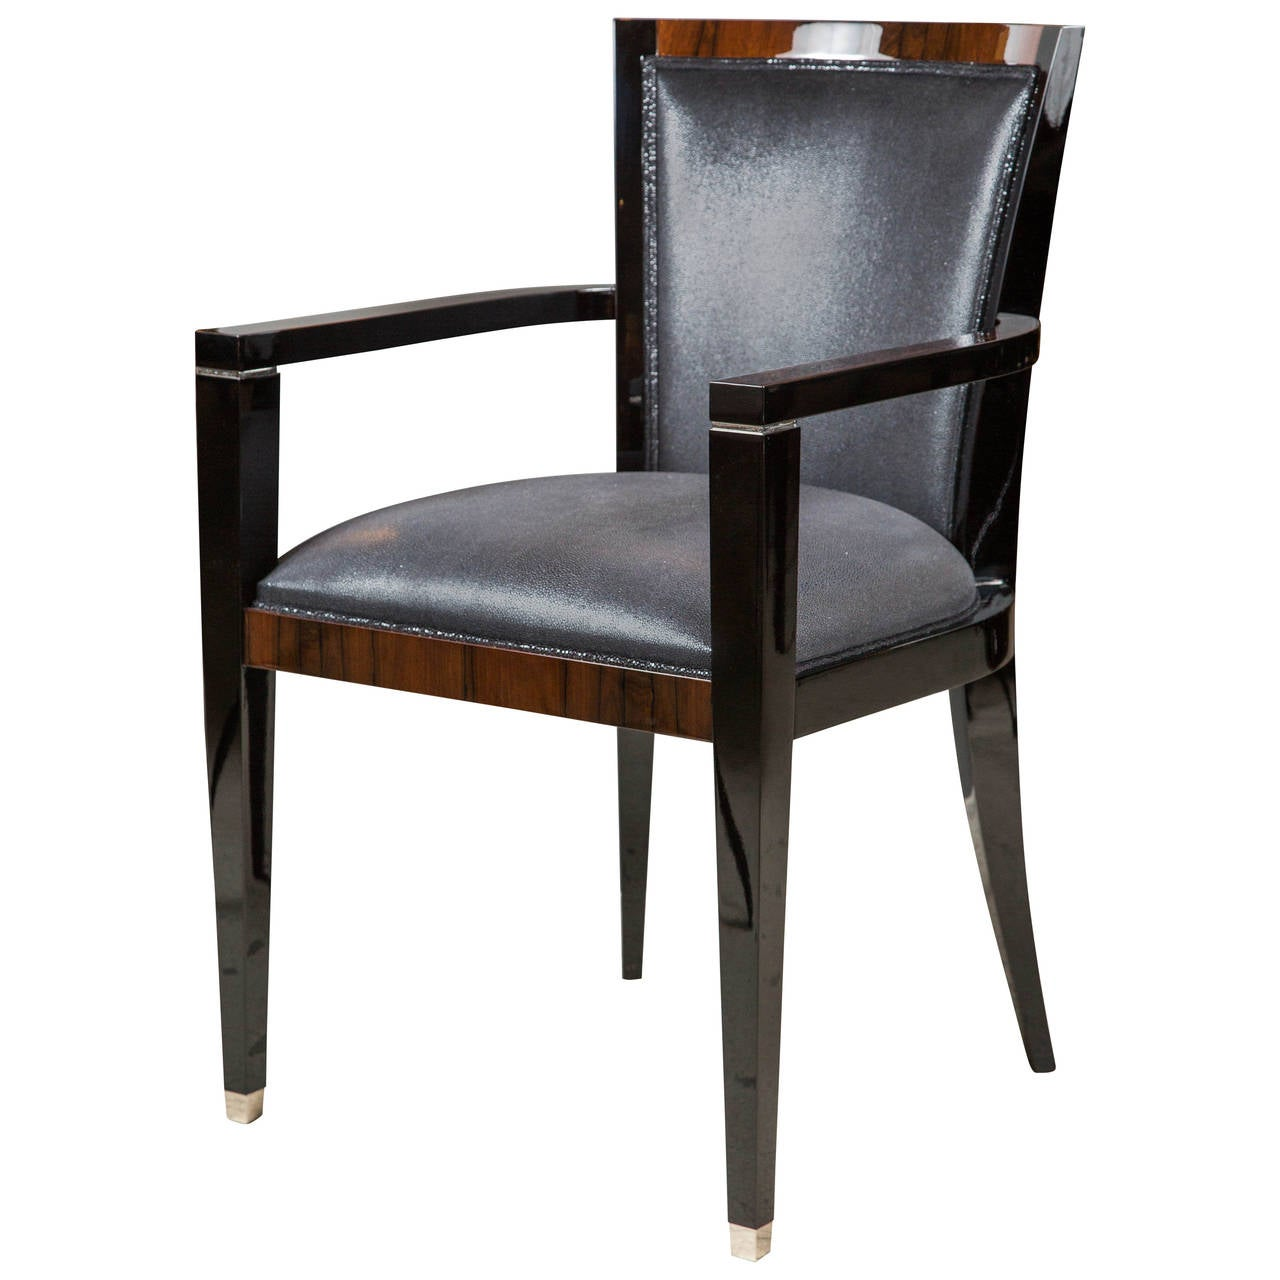 art deco style dining or occasional chair with arms at 1stdibs. Black Bedroom Furniture Sets. Home Design Ideas